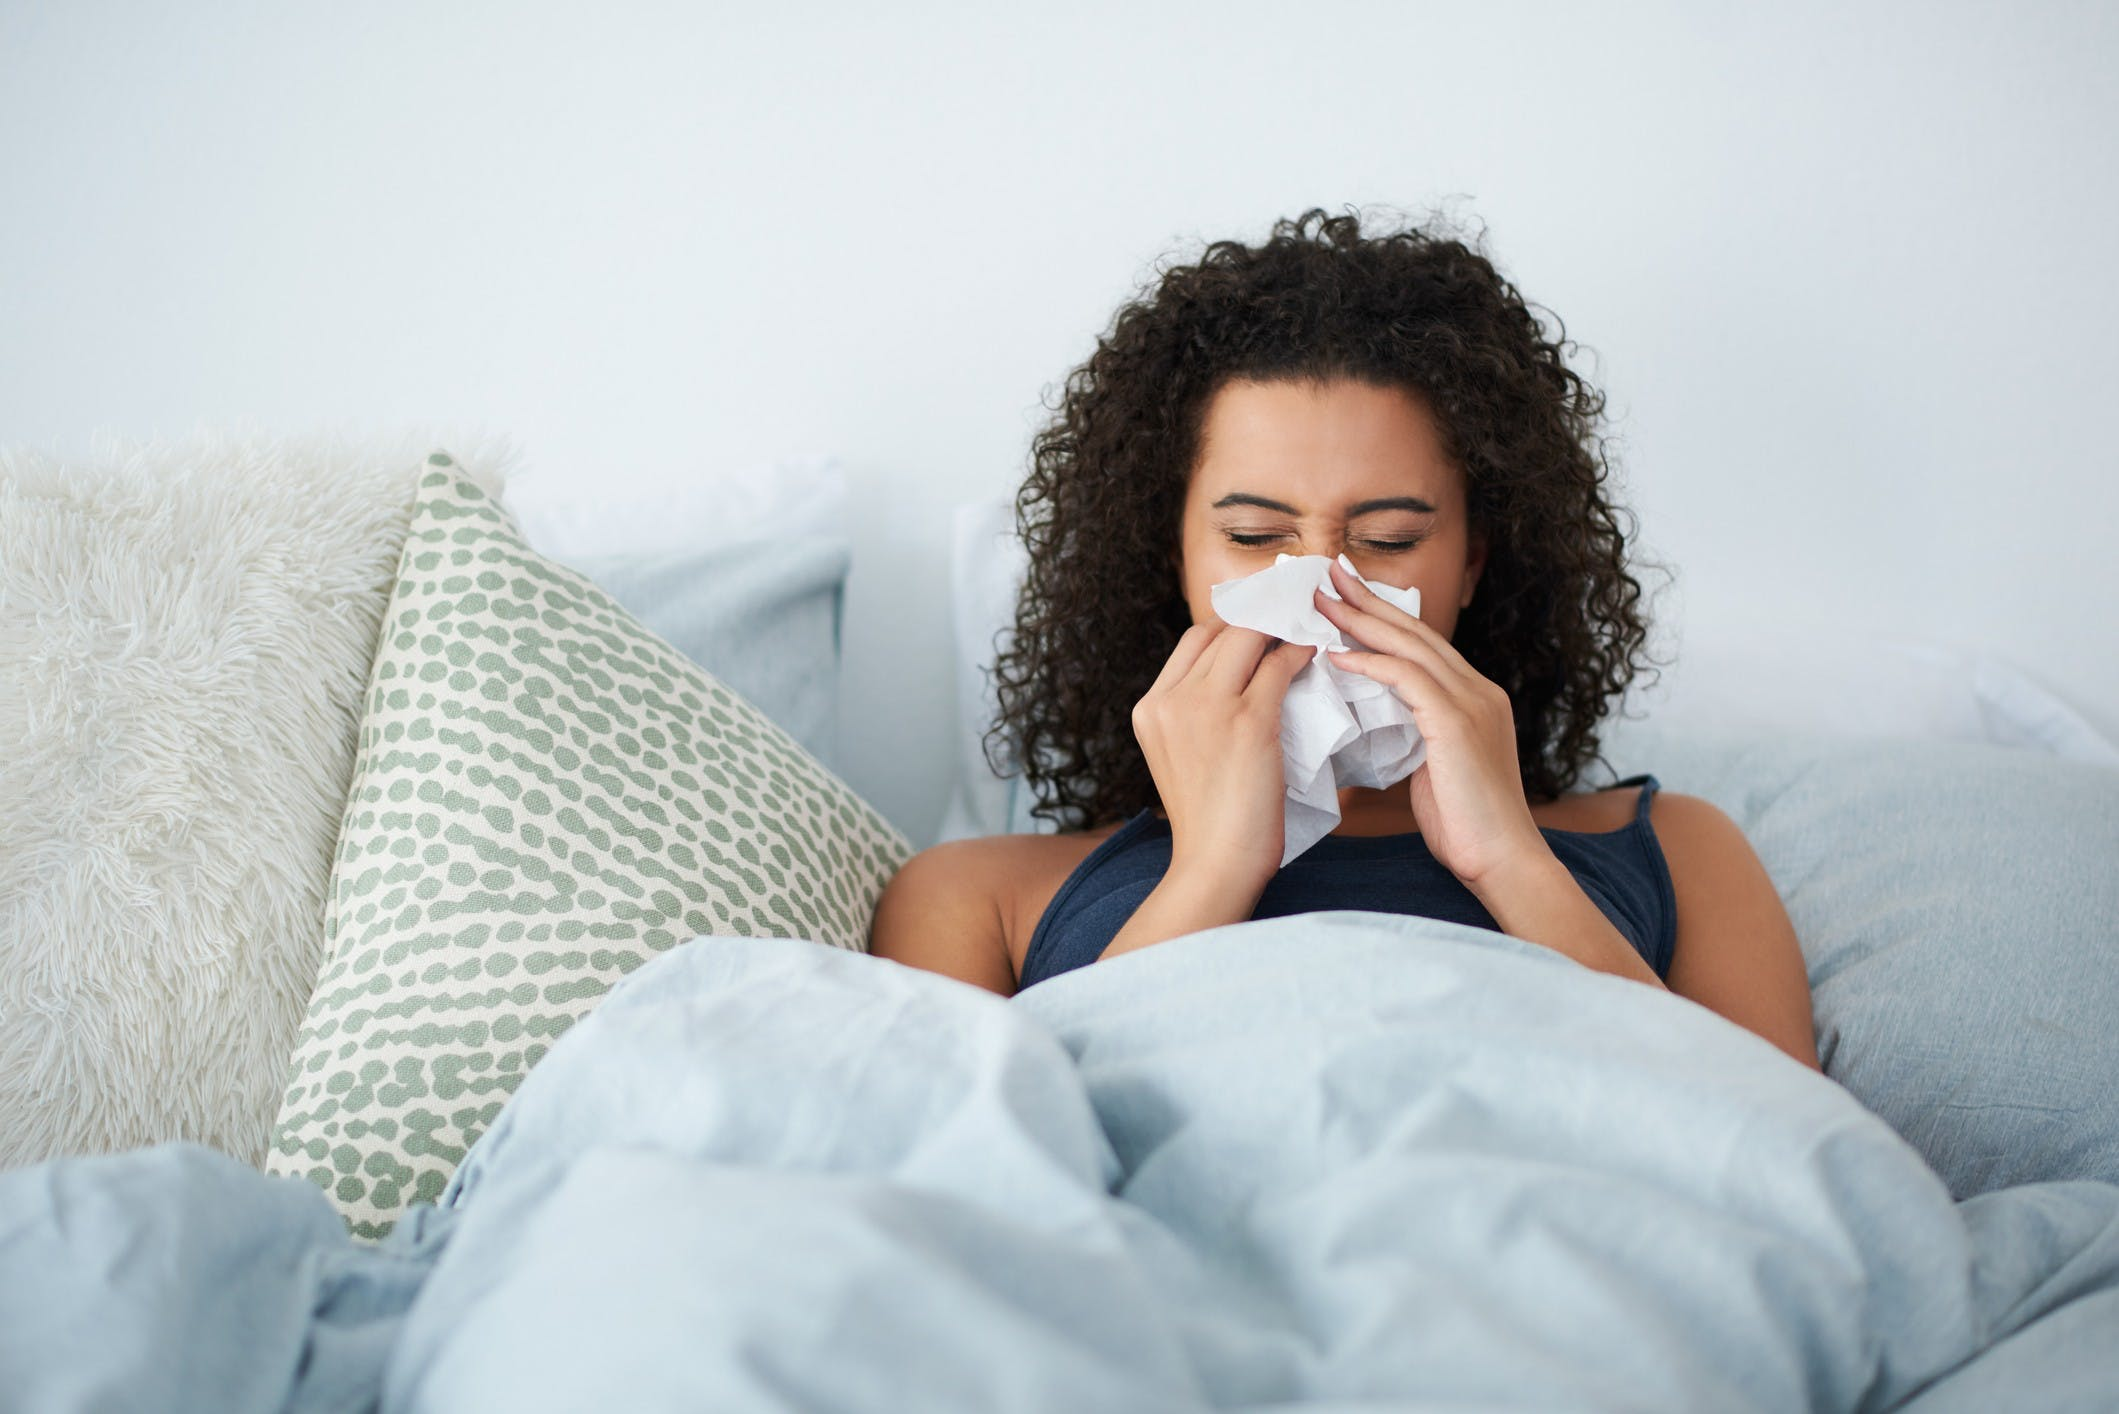 How To Sleep With A Stuffy Nose